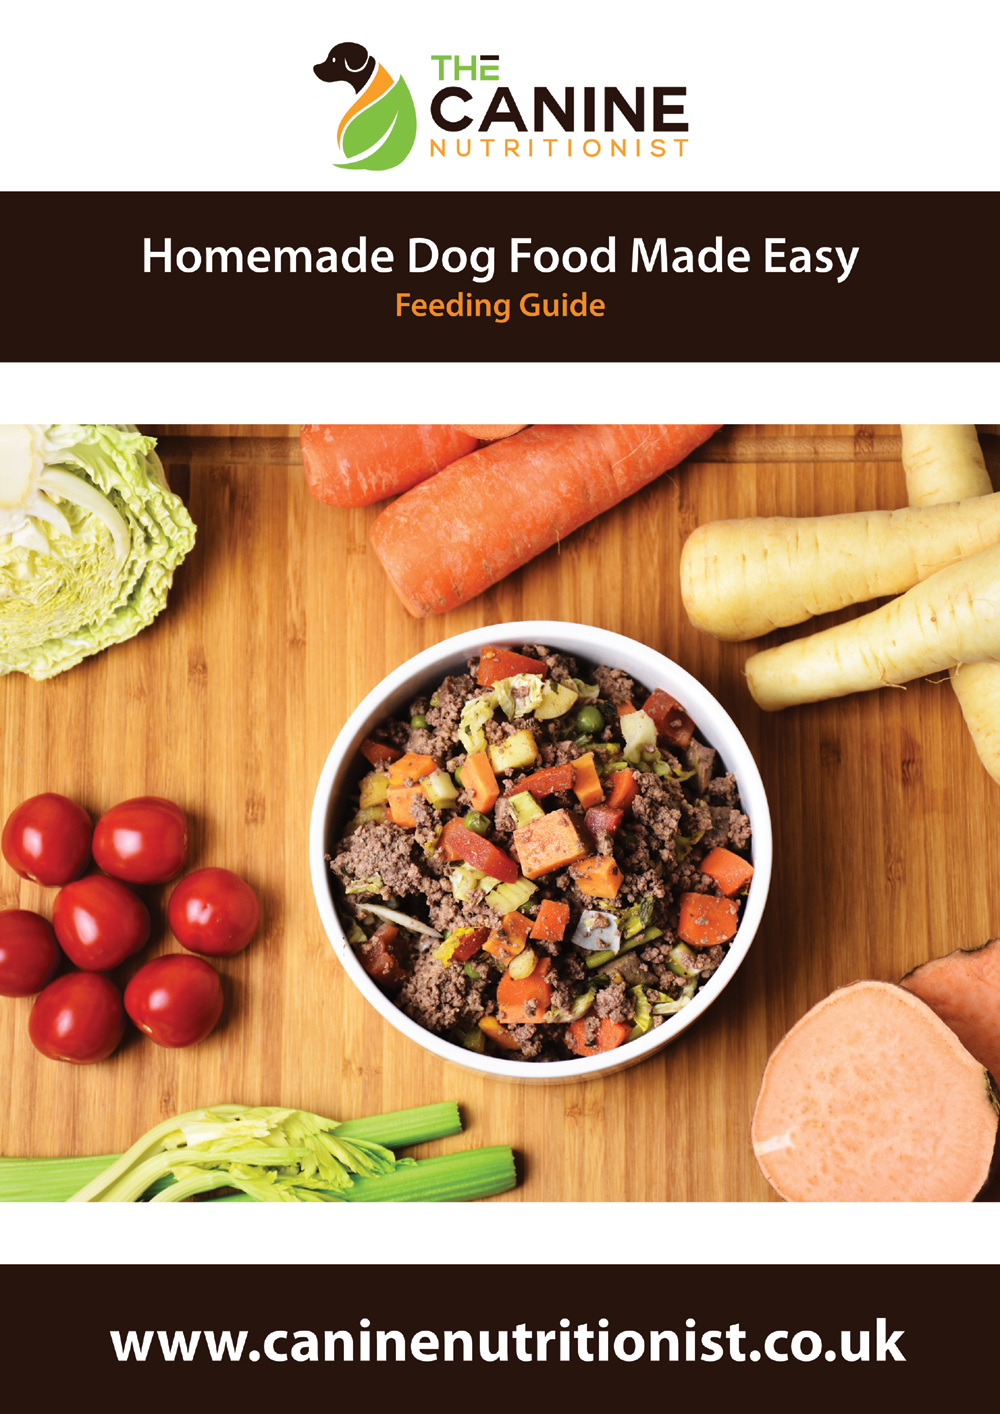 Dog Nutritionist Recipes